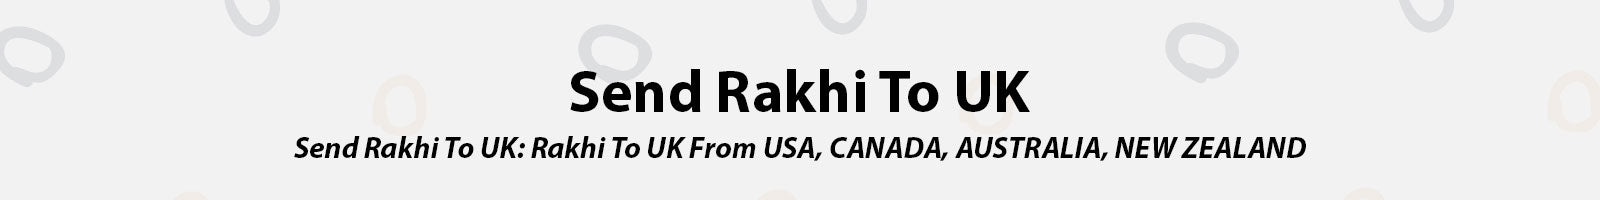 Send Rakhi To UK from USA, Canada, Australia, and New Zealand